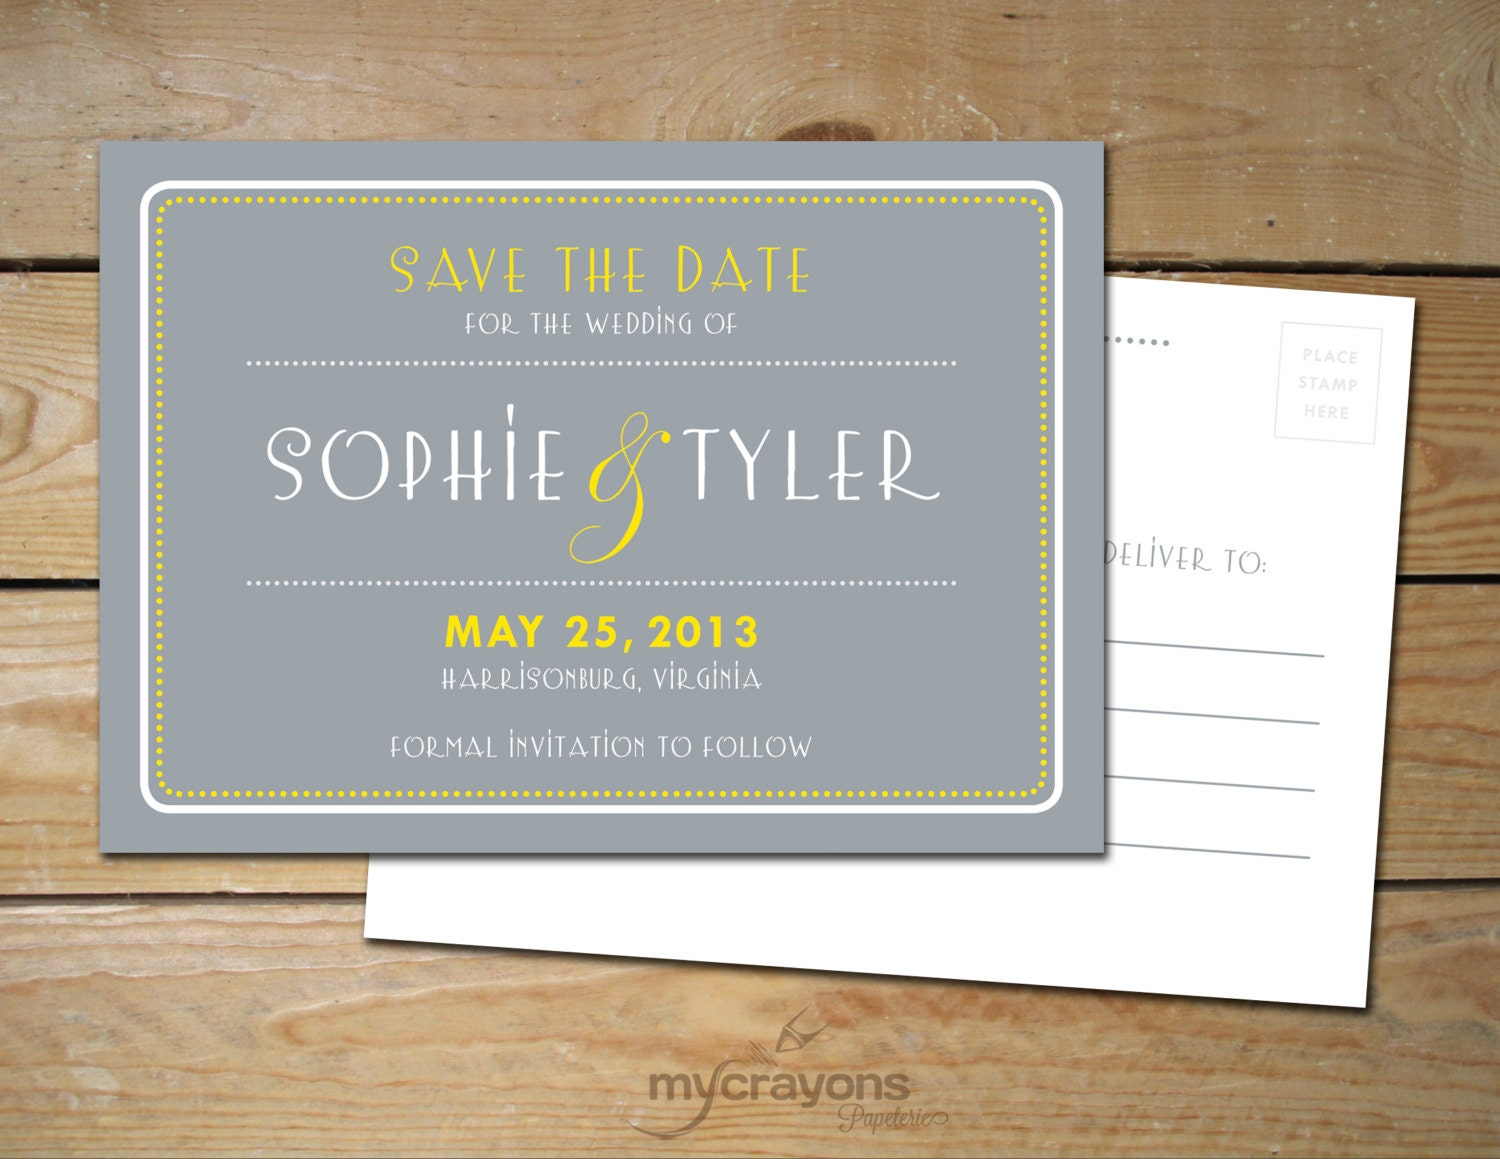 1920s art deco wedding save the date card by mycrayonspapeterie. Black Bedroom Furniture Sets. Home Design Ideas